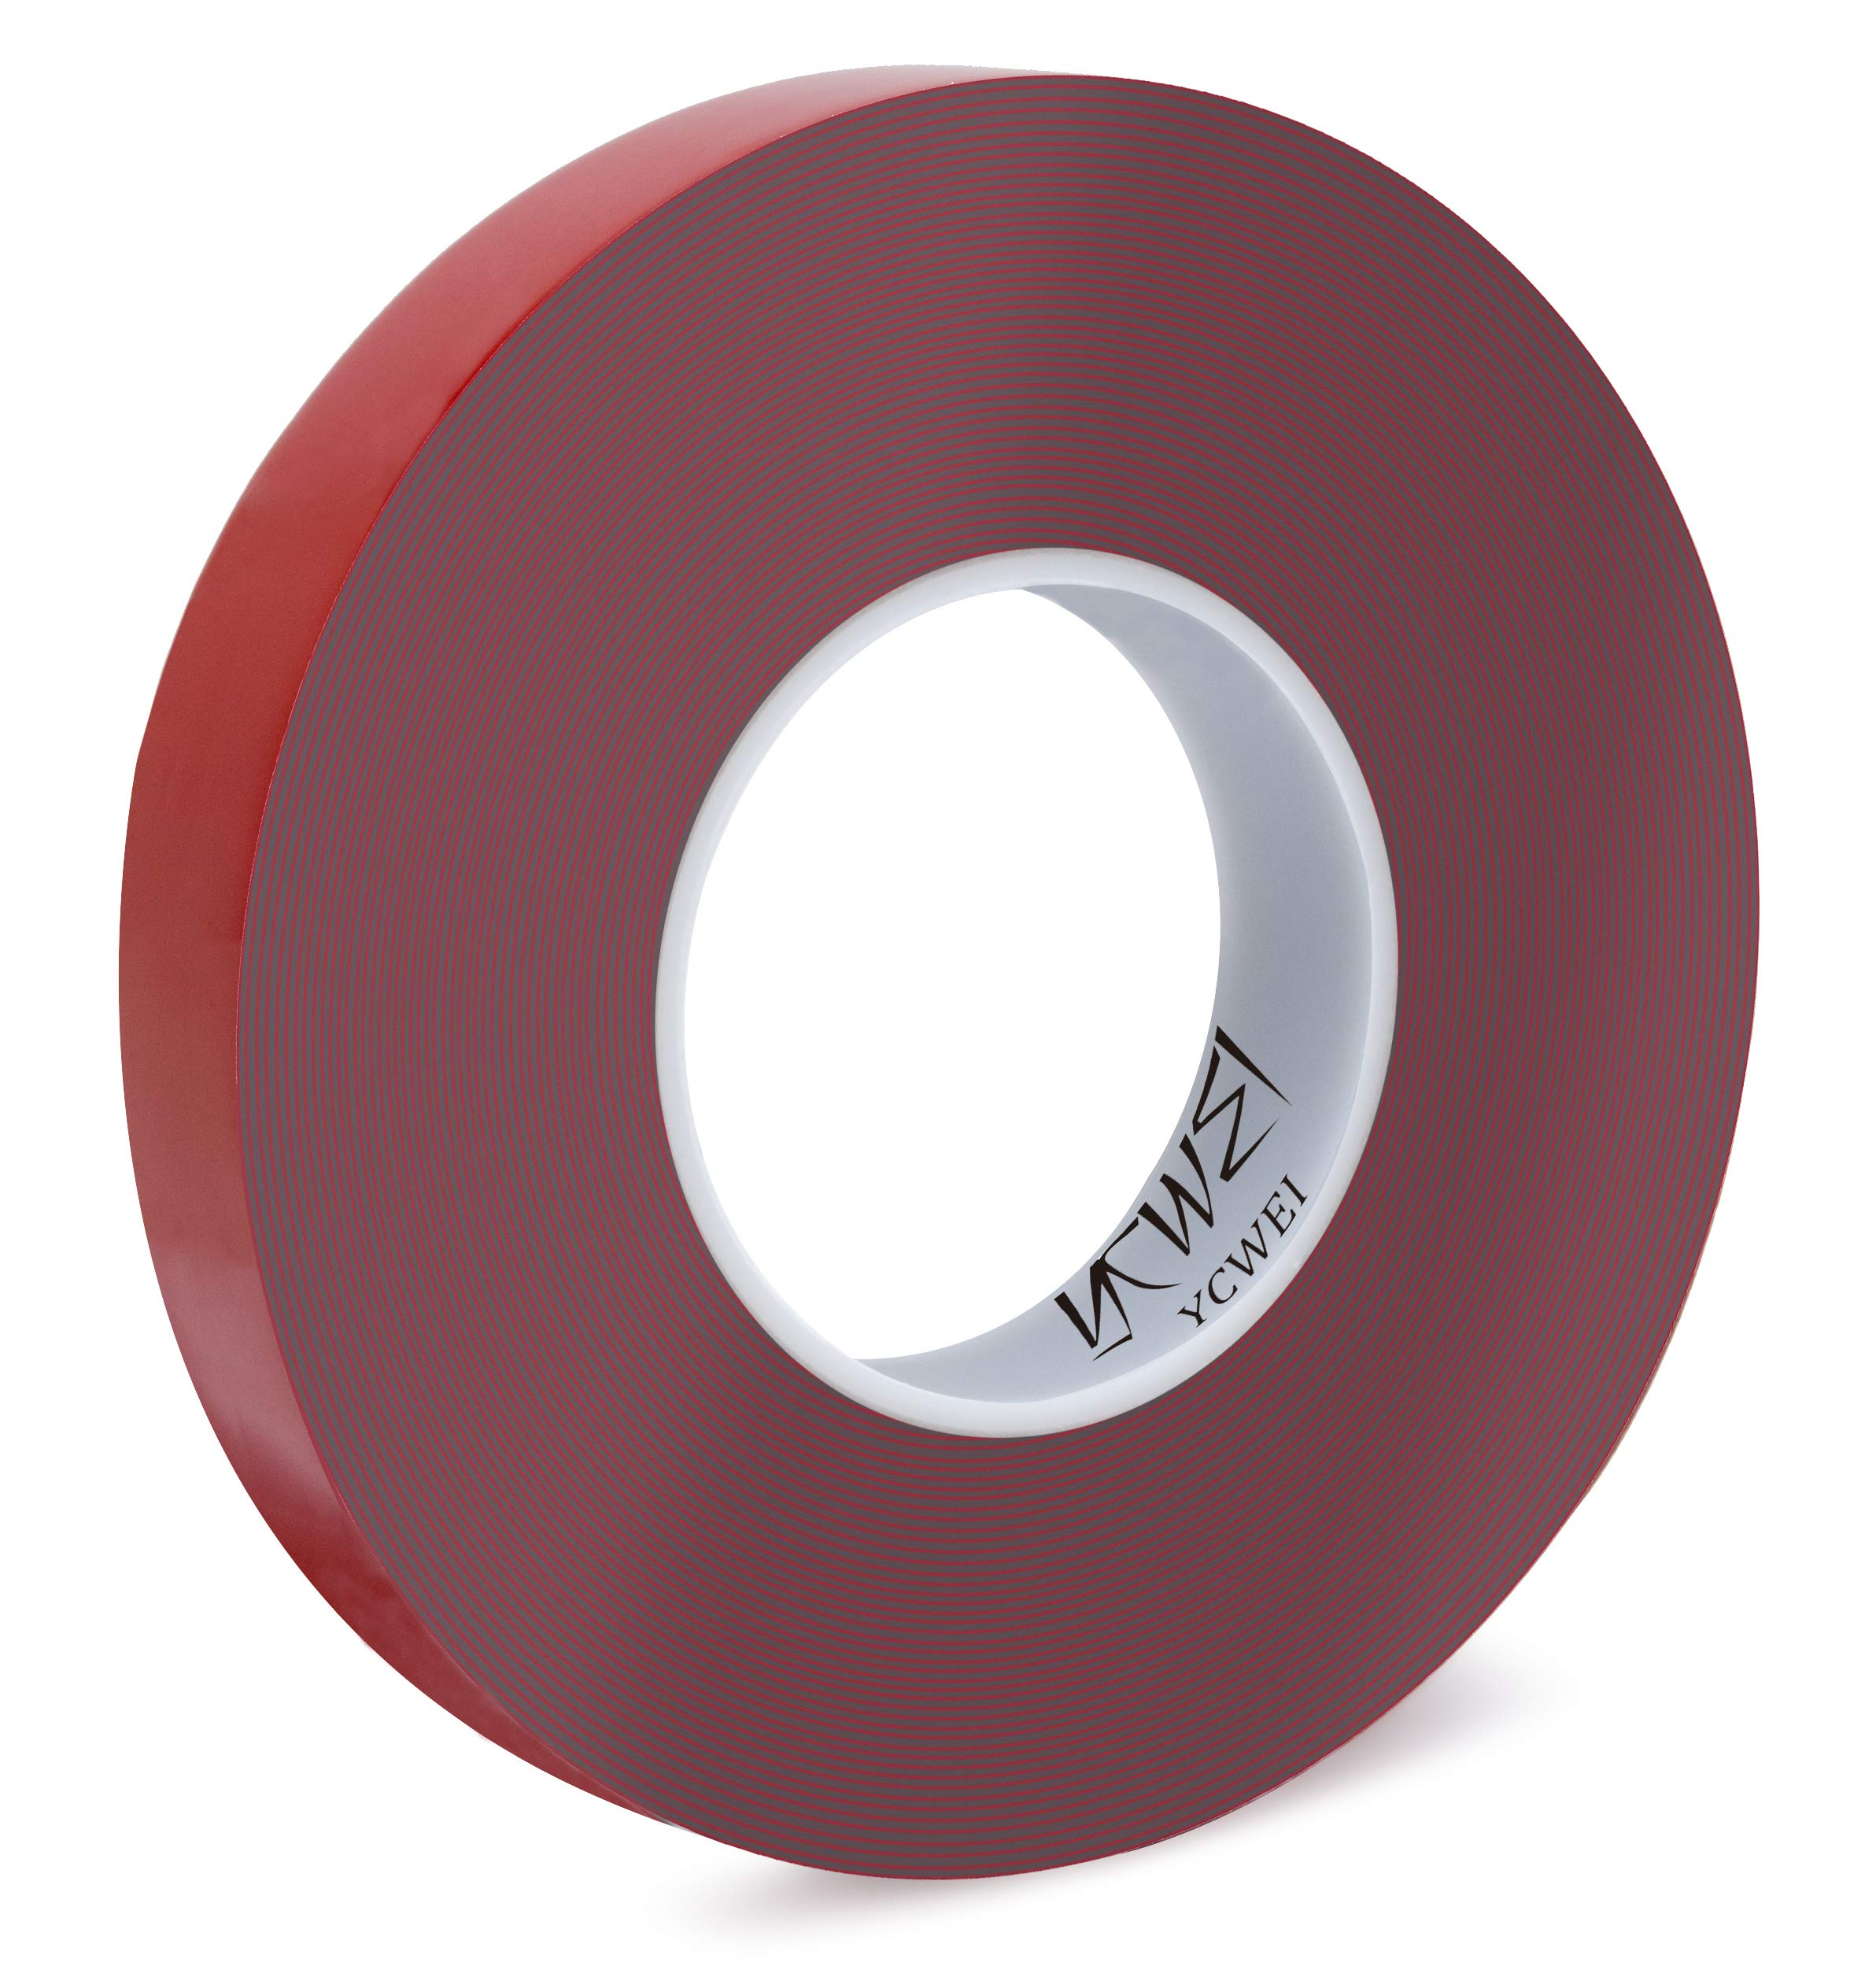 Double Sided Acrylic Heavy Duty Mounting Tape,Removable,Gray,Tough Bonding Strength,Weatherproof Indoor and Exterior Double Sides Brick Mounting Tape,1 in x 440in- 1mm Thickness 1 PCS by YCWEI